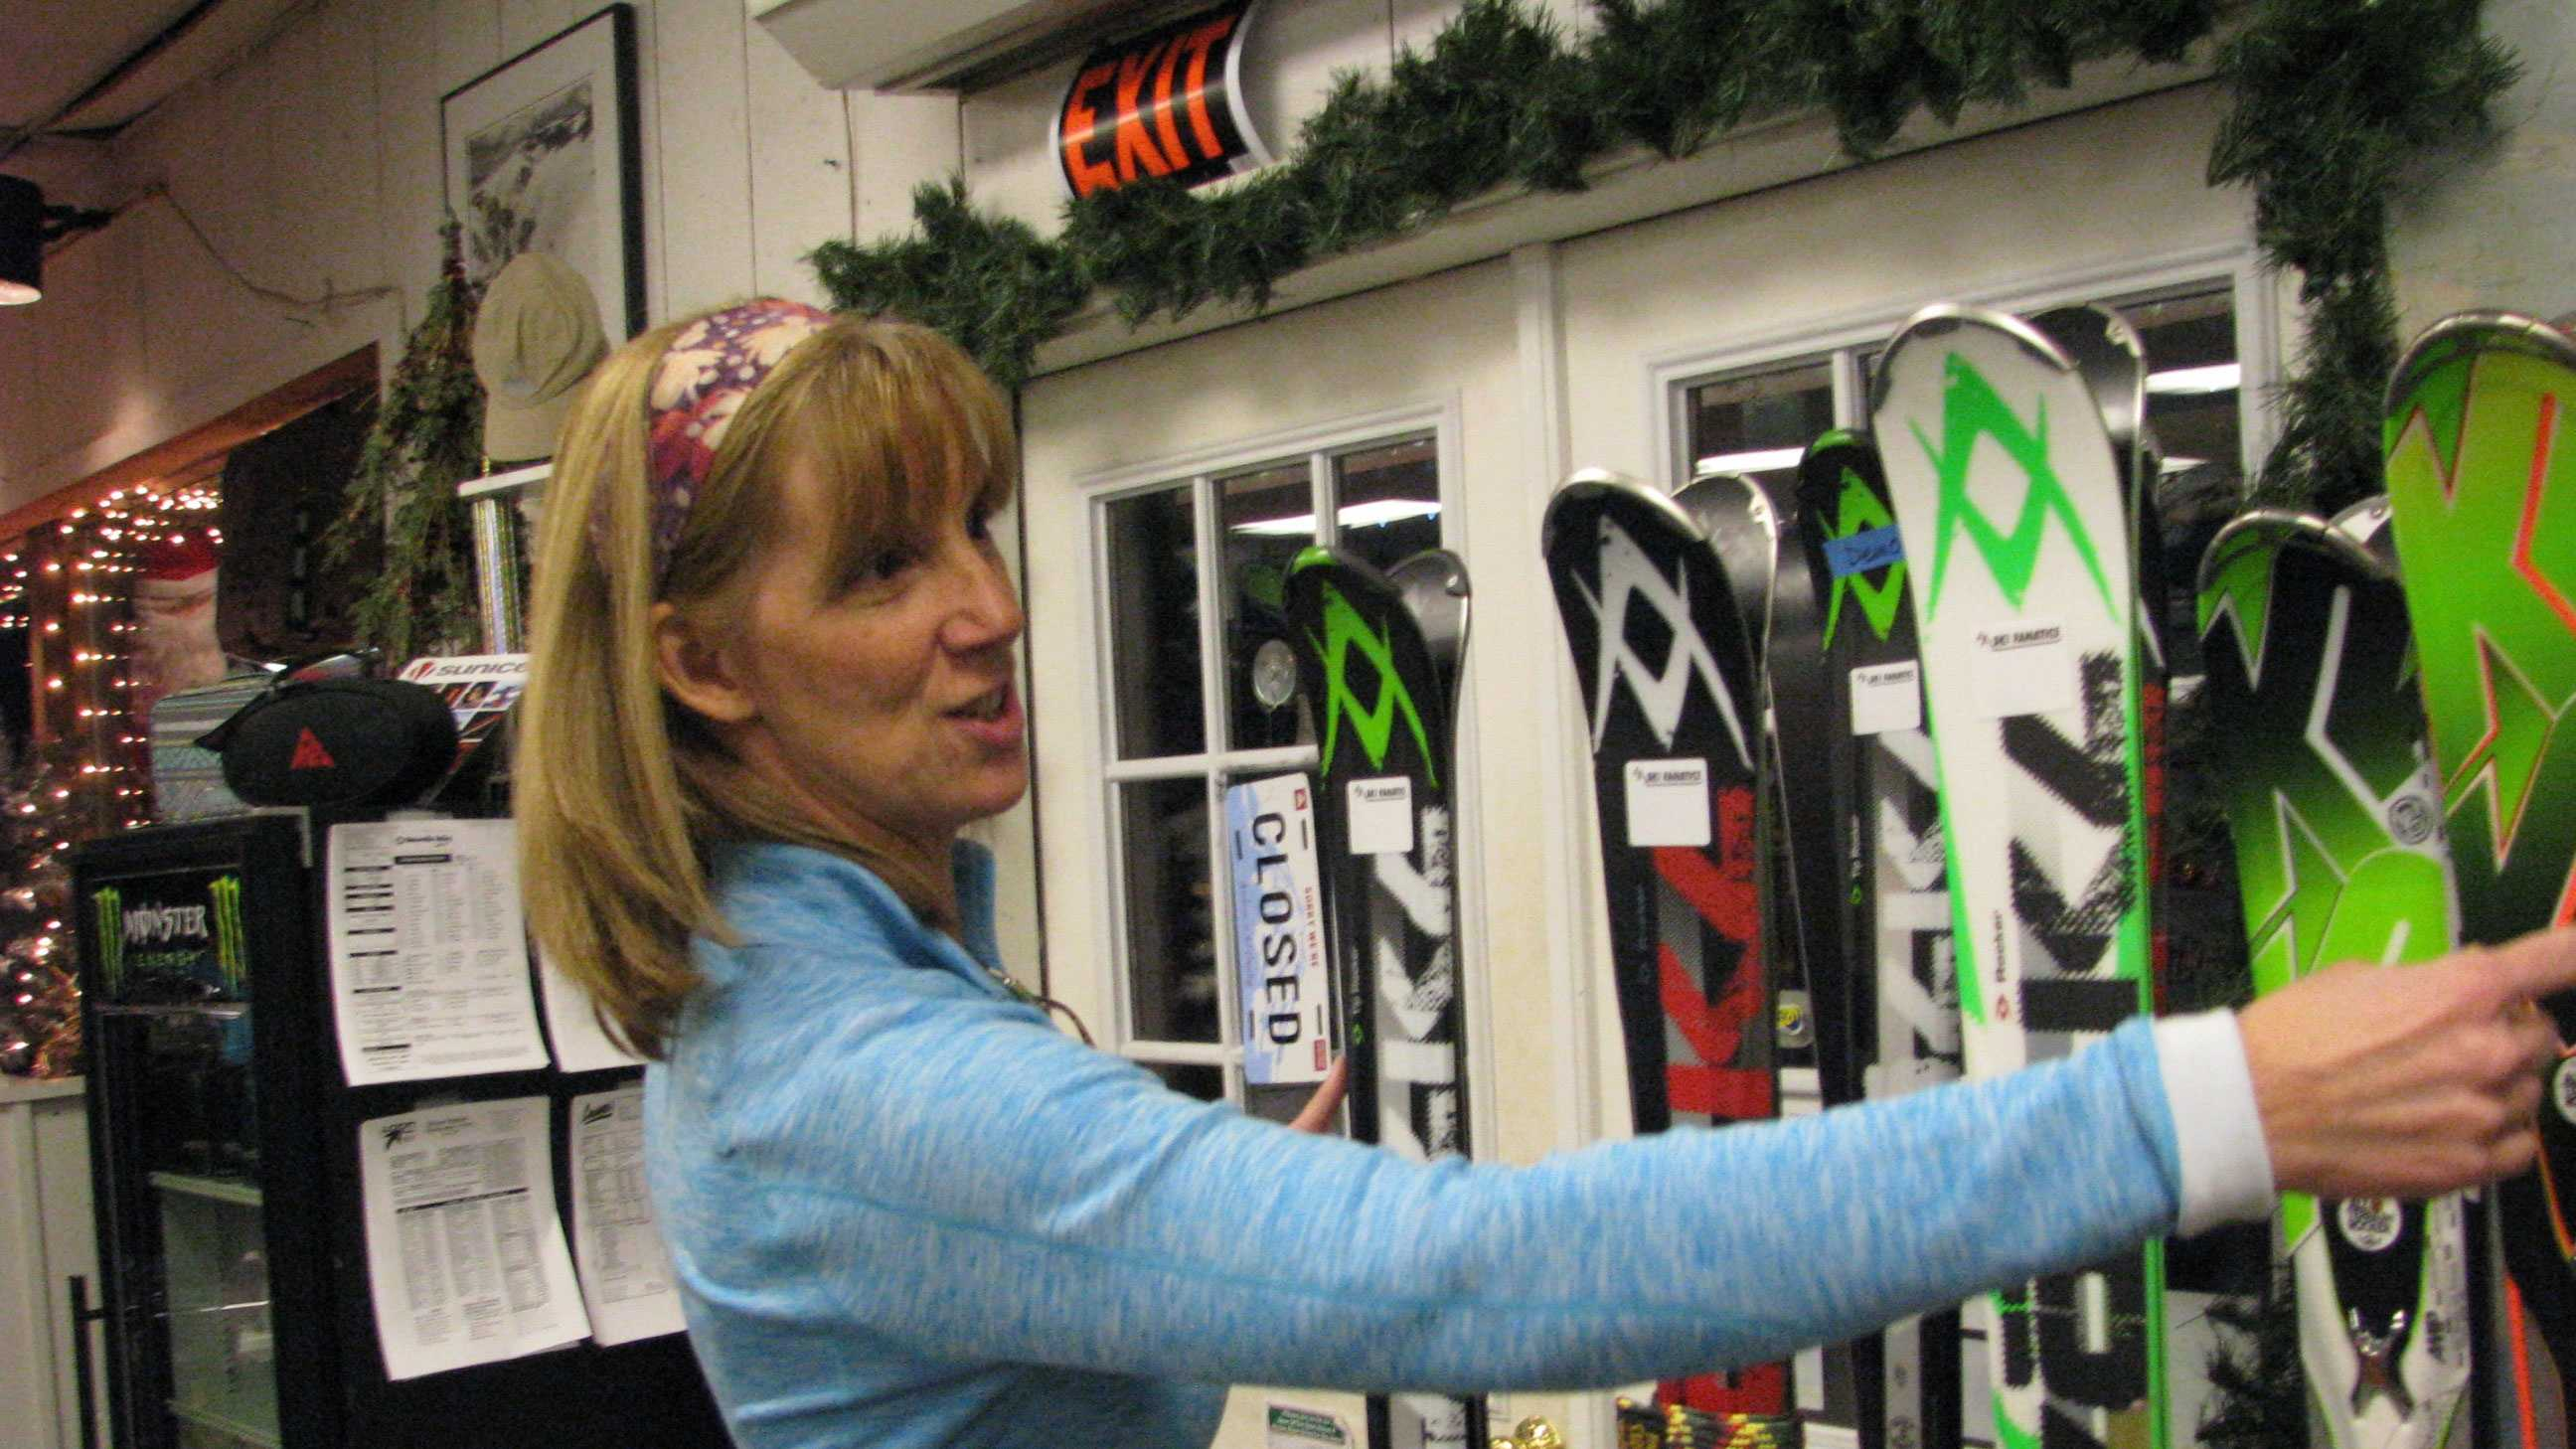 Deb Englehardt, owner of Ski Fanatics in Campton, shows some of the demo skis available daily for rent from her shop, with the cost applicable towards purchase. Demo days are going on across New England to help skiers and riders find the perfect gear.